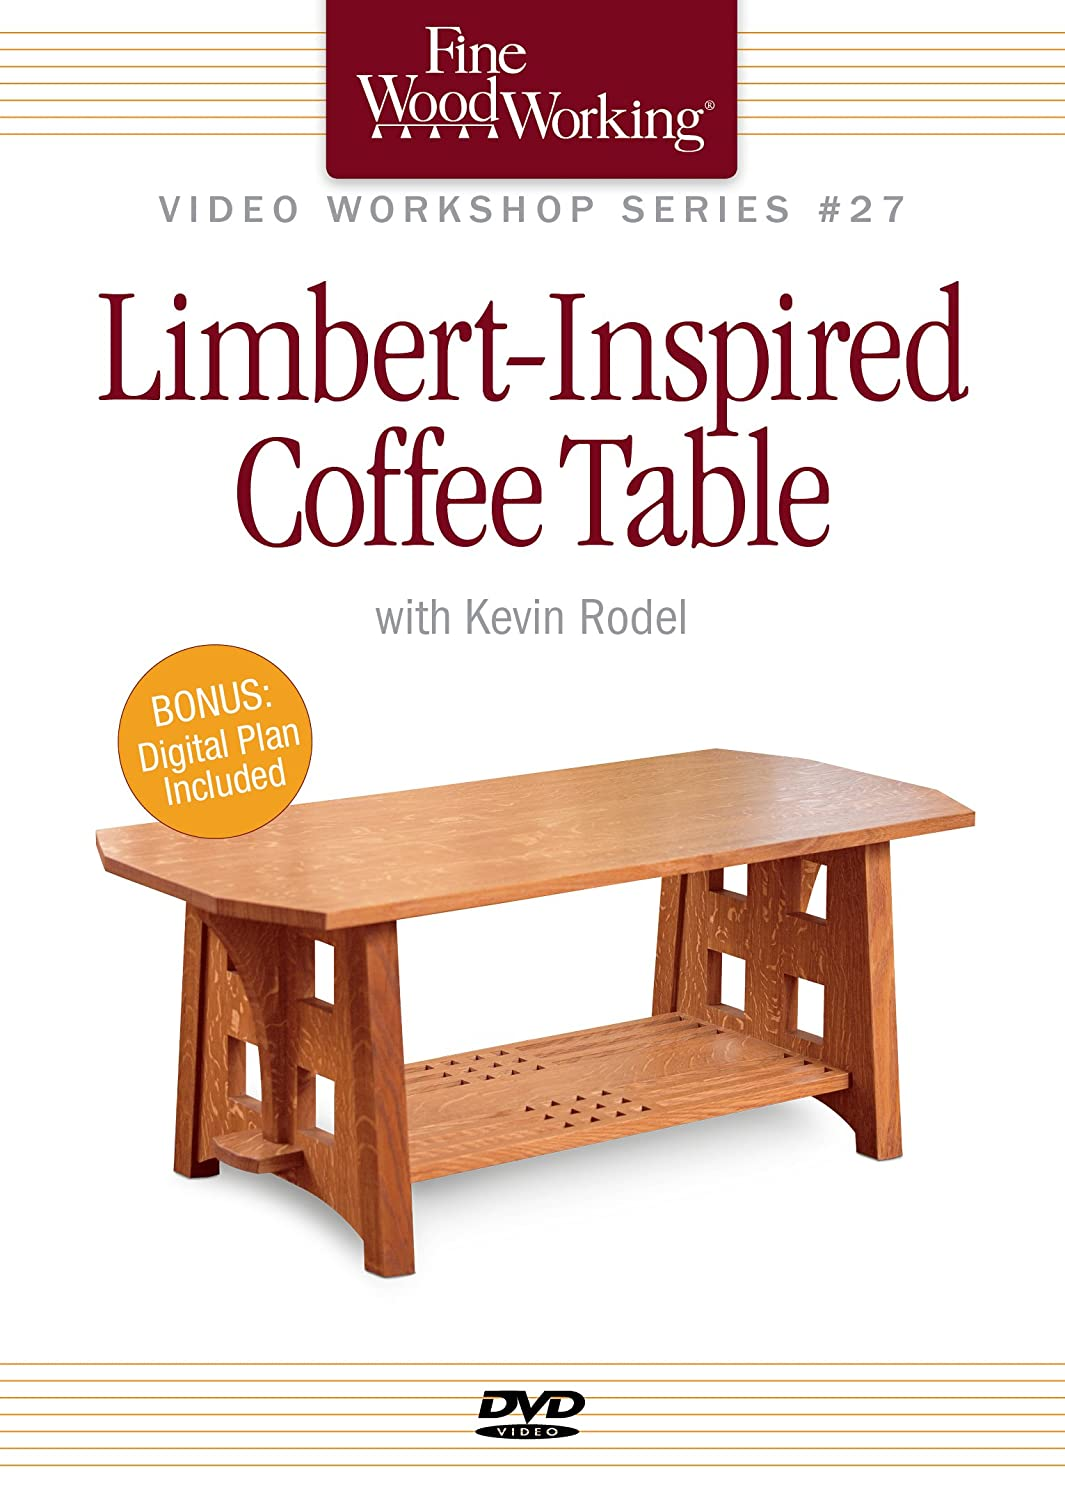 Amazon Com Fine Woodworking Video Workshop Series Limbert